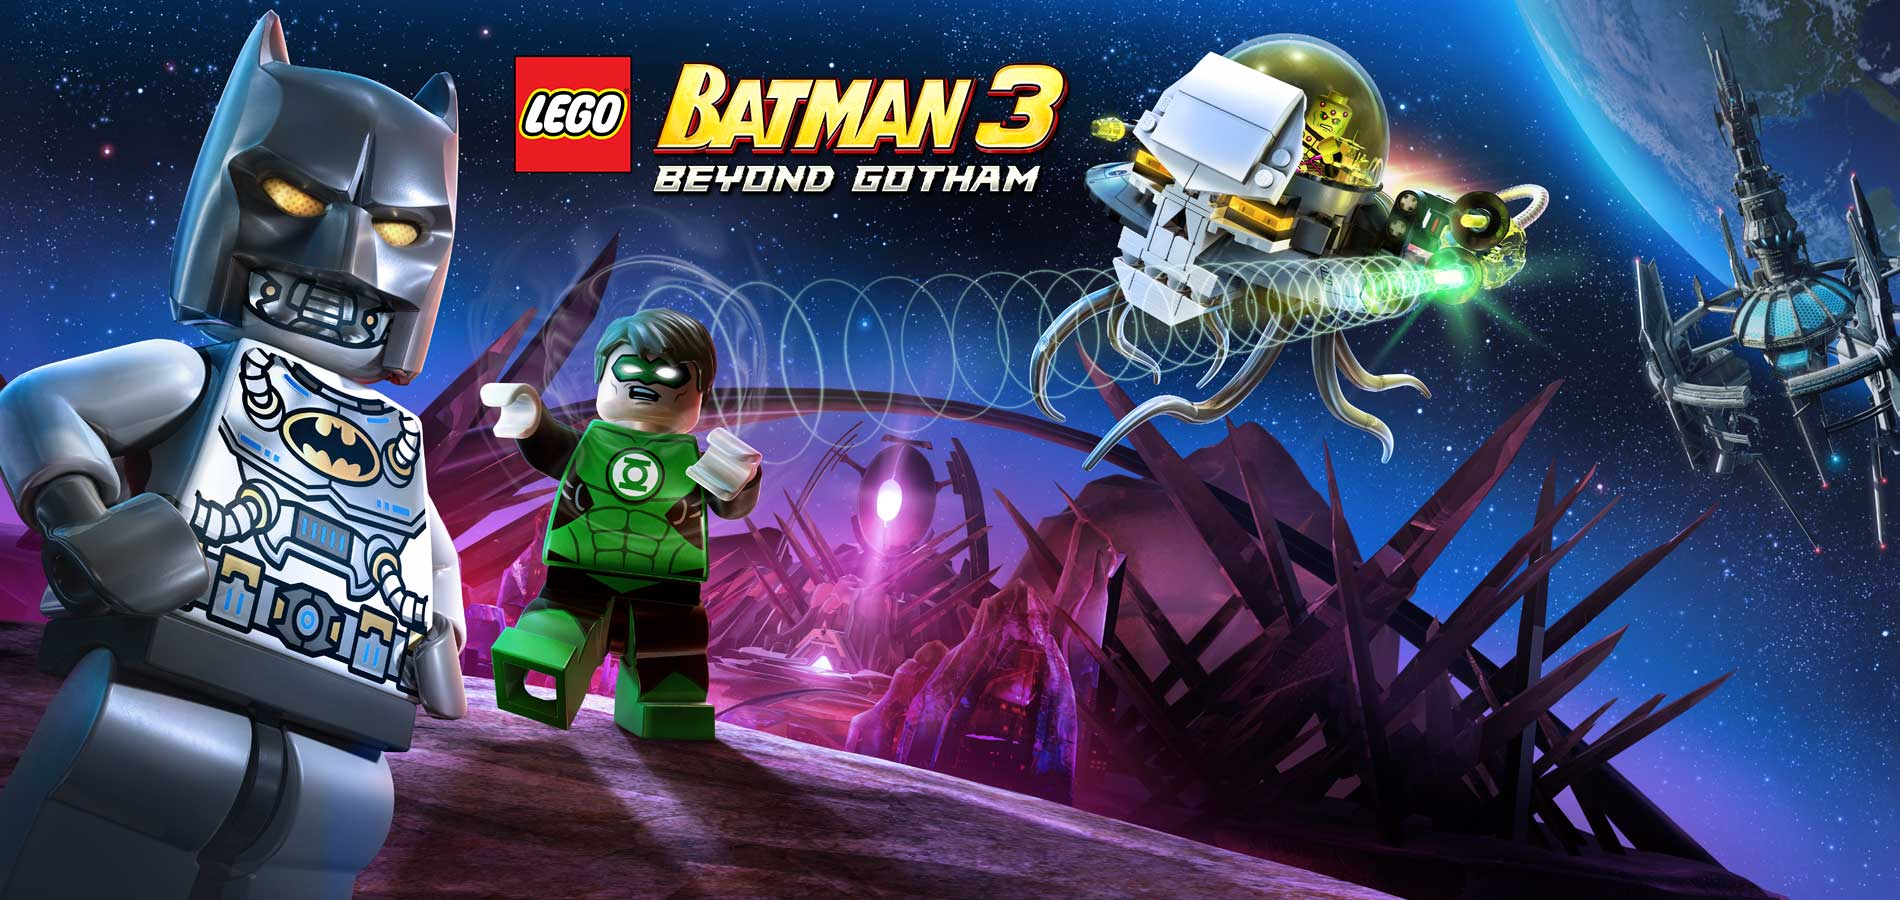 Lego Batman 3: Beyond Gotham Walkthrough | Walkthroughs ...